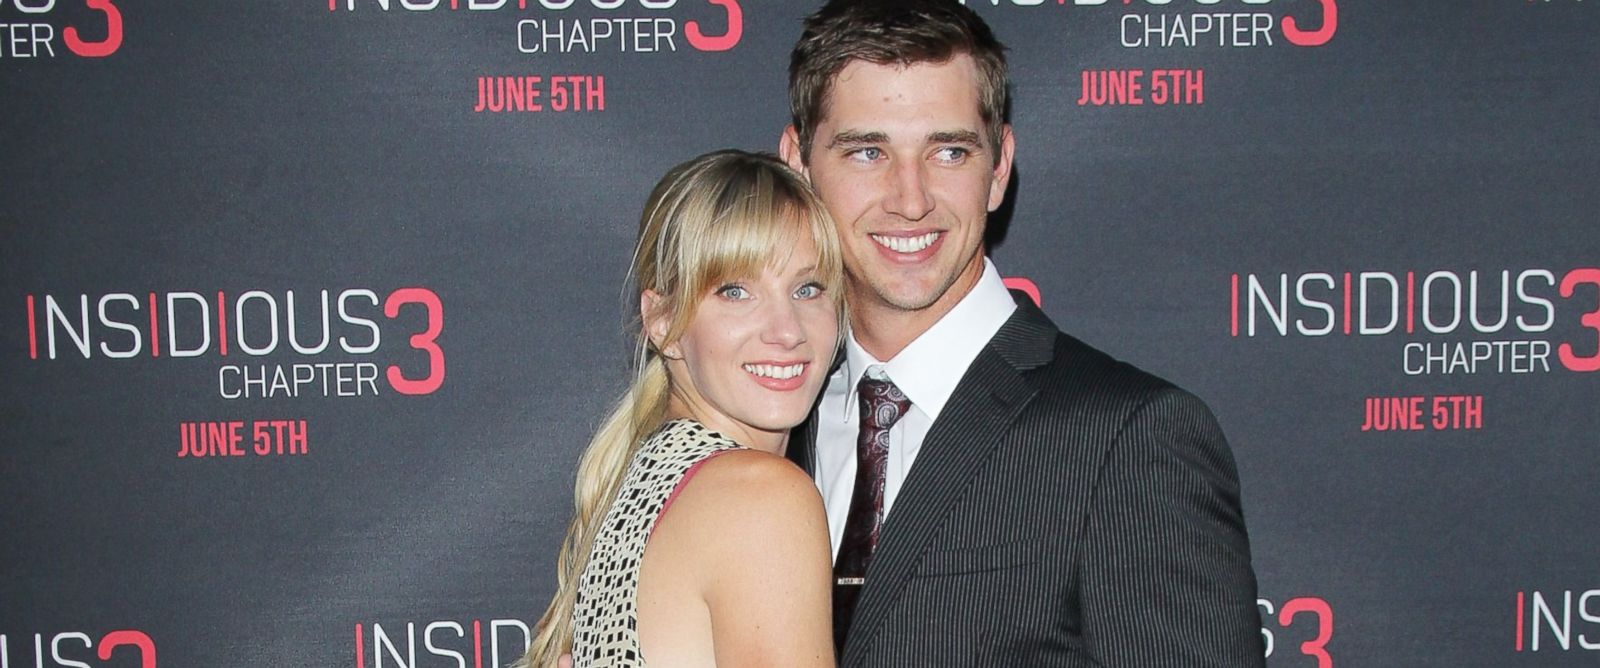 "PHOTO: Heather Morris and husband, Taylor Hubbell arrive at the Los Angeles premiere of ""Insidious: Chapter 3"" held at TCL Chinese Theatre IMAX, June 4, 2015, in Hollywood, Calif."